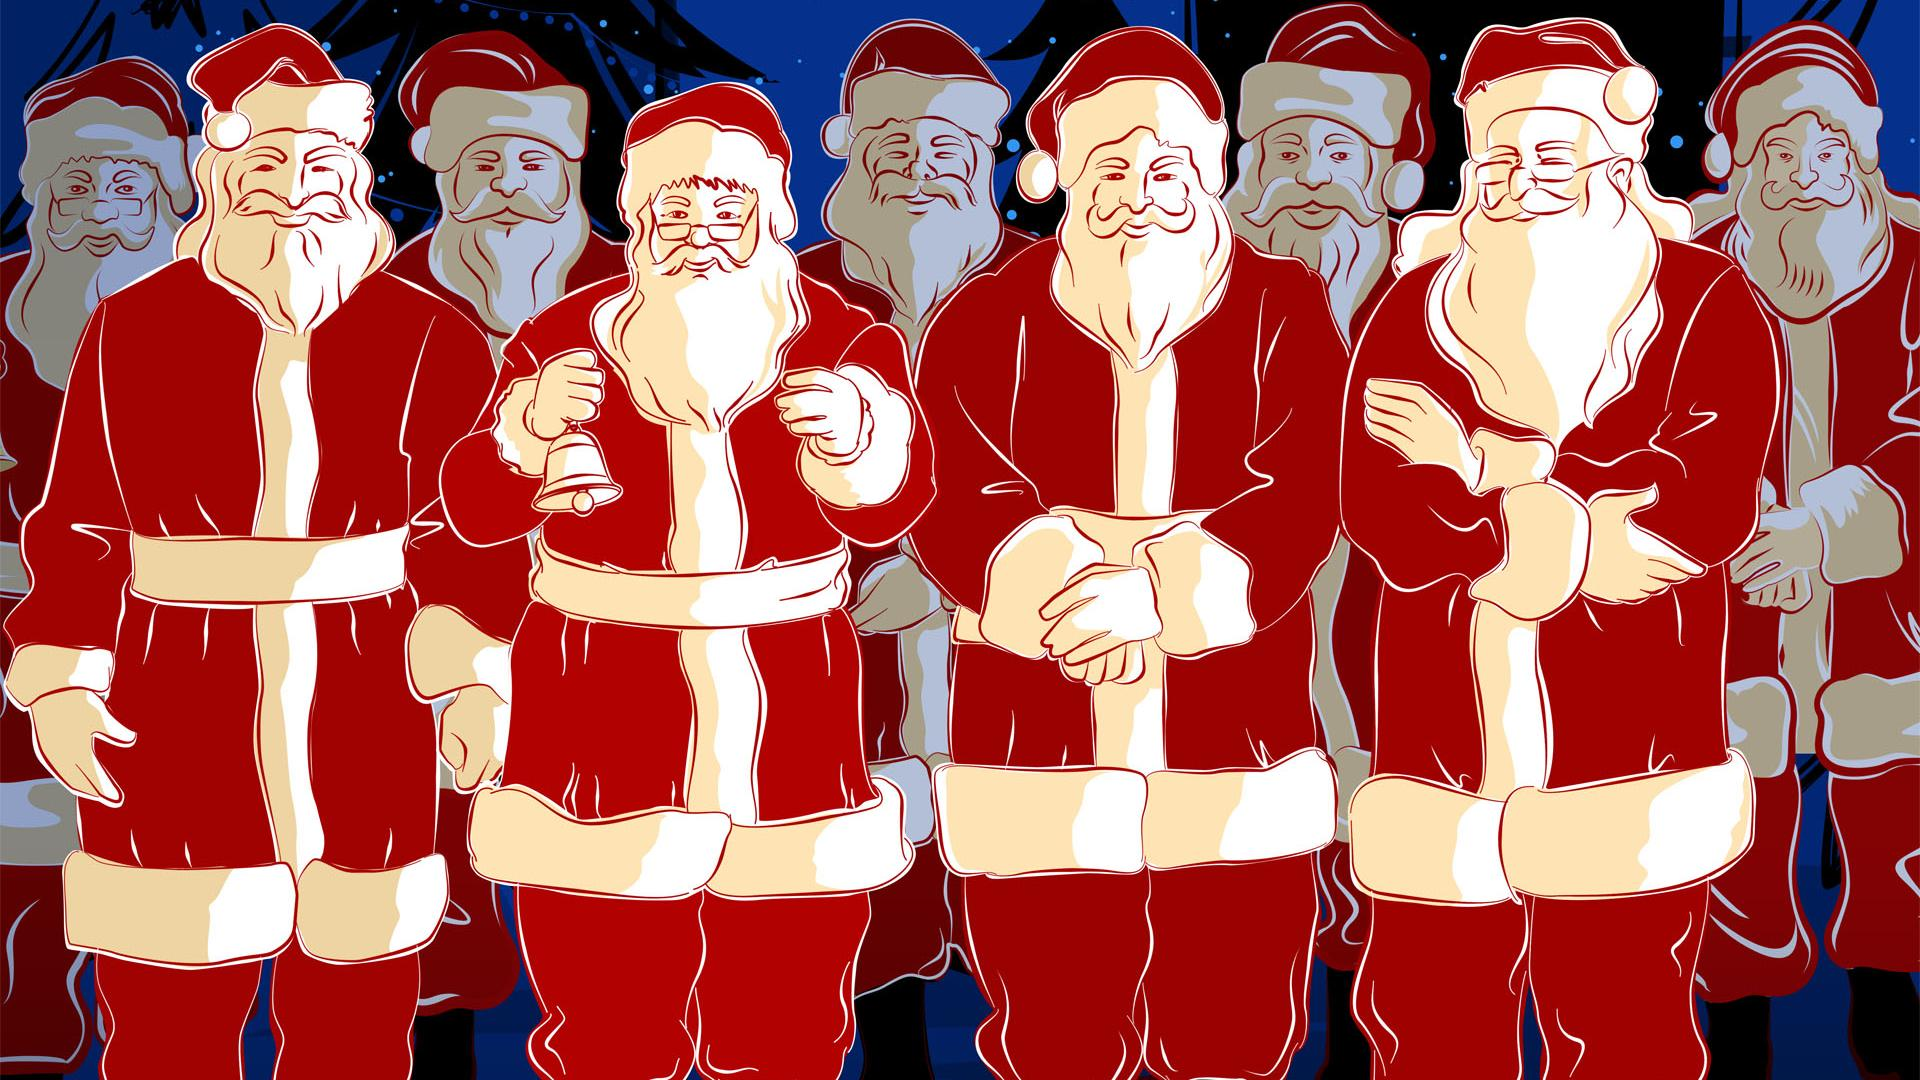 santclaus wallpaper 1